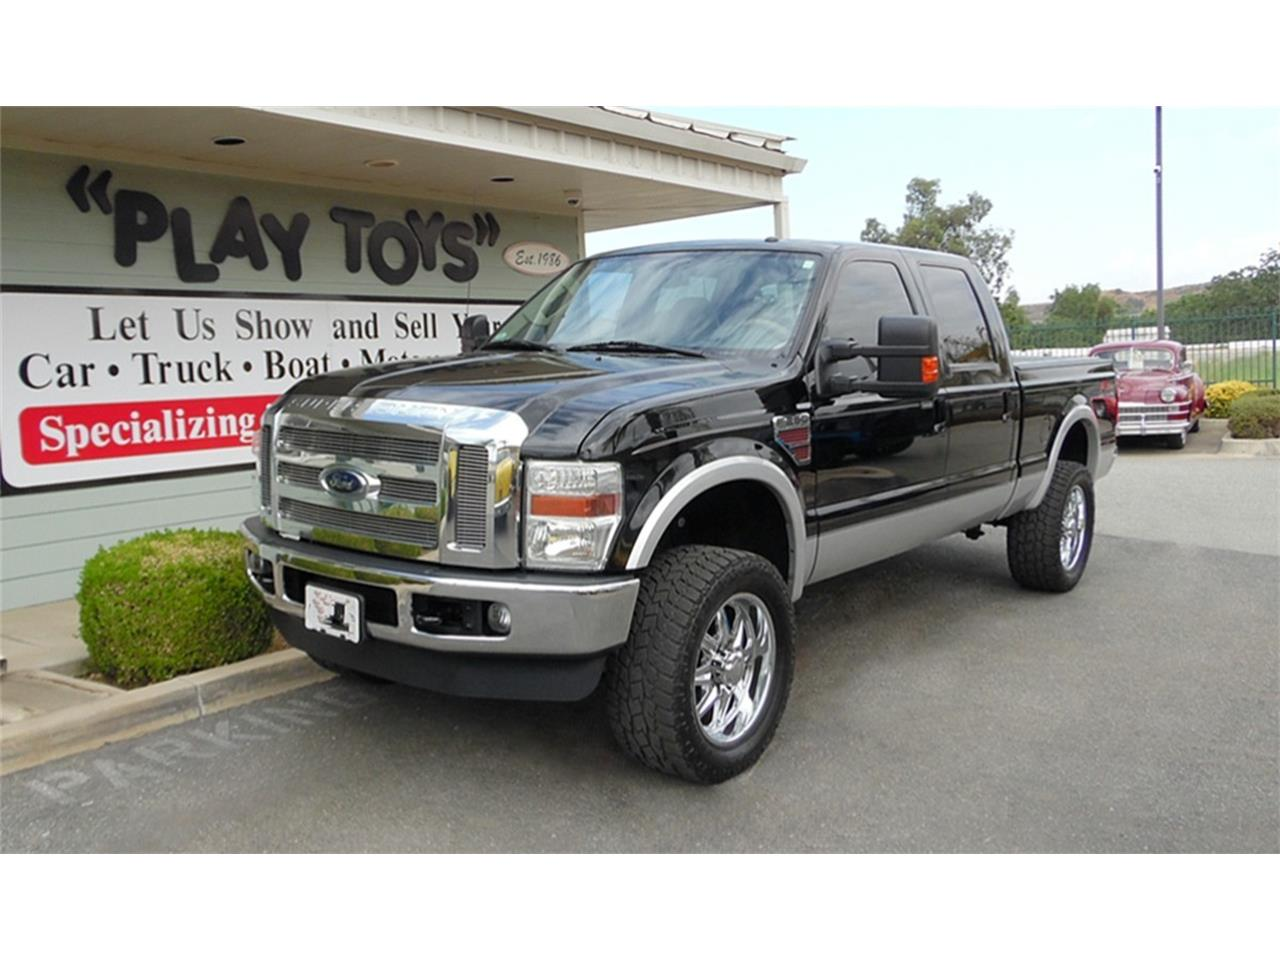 Large picture of 10 f250 lariat nsrx